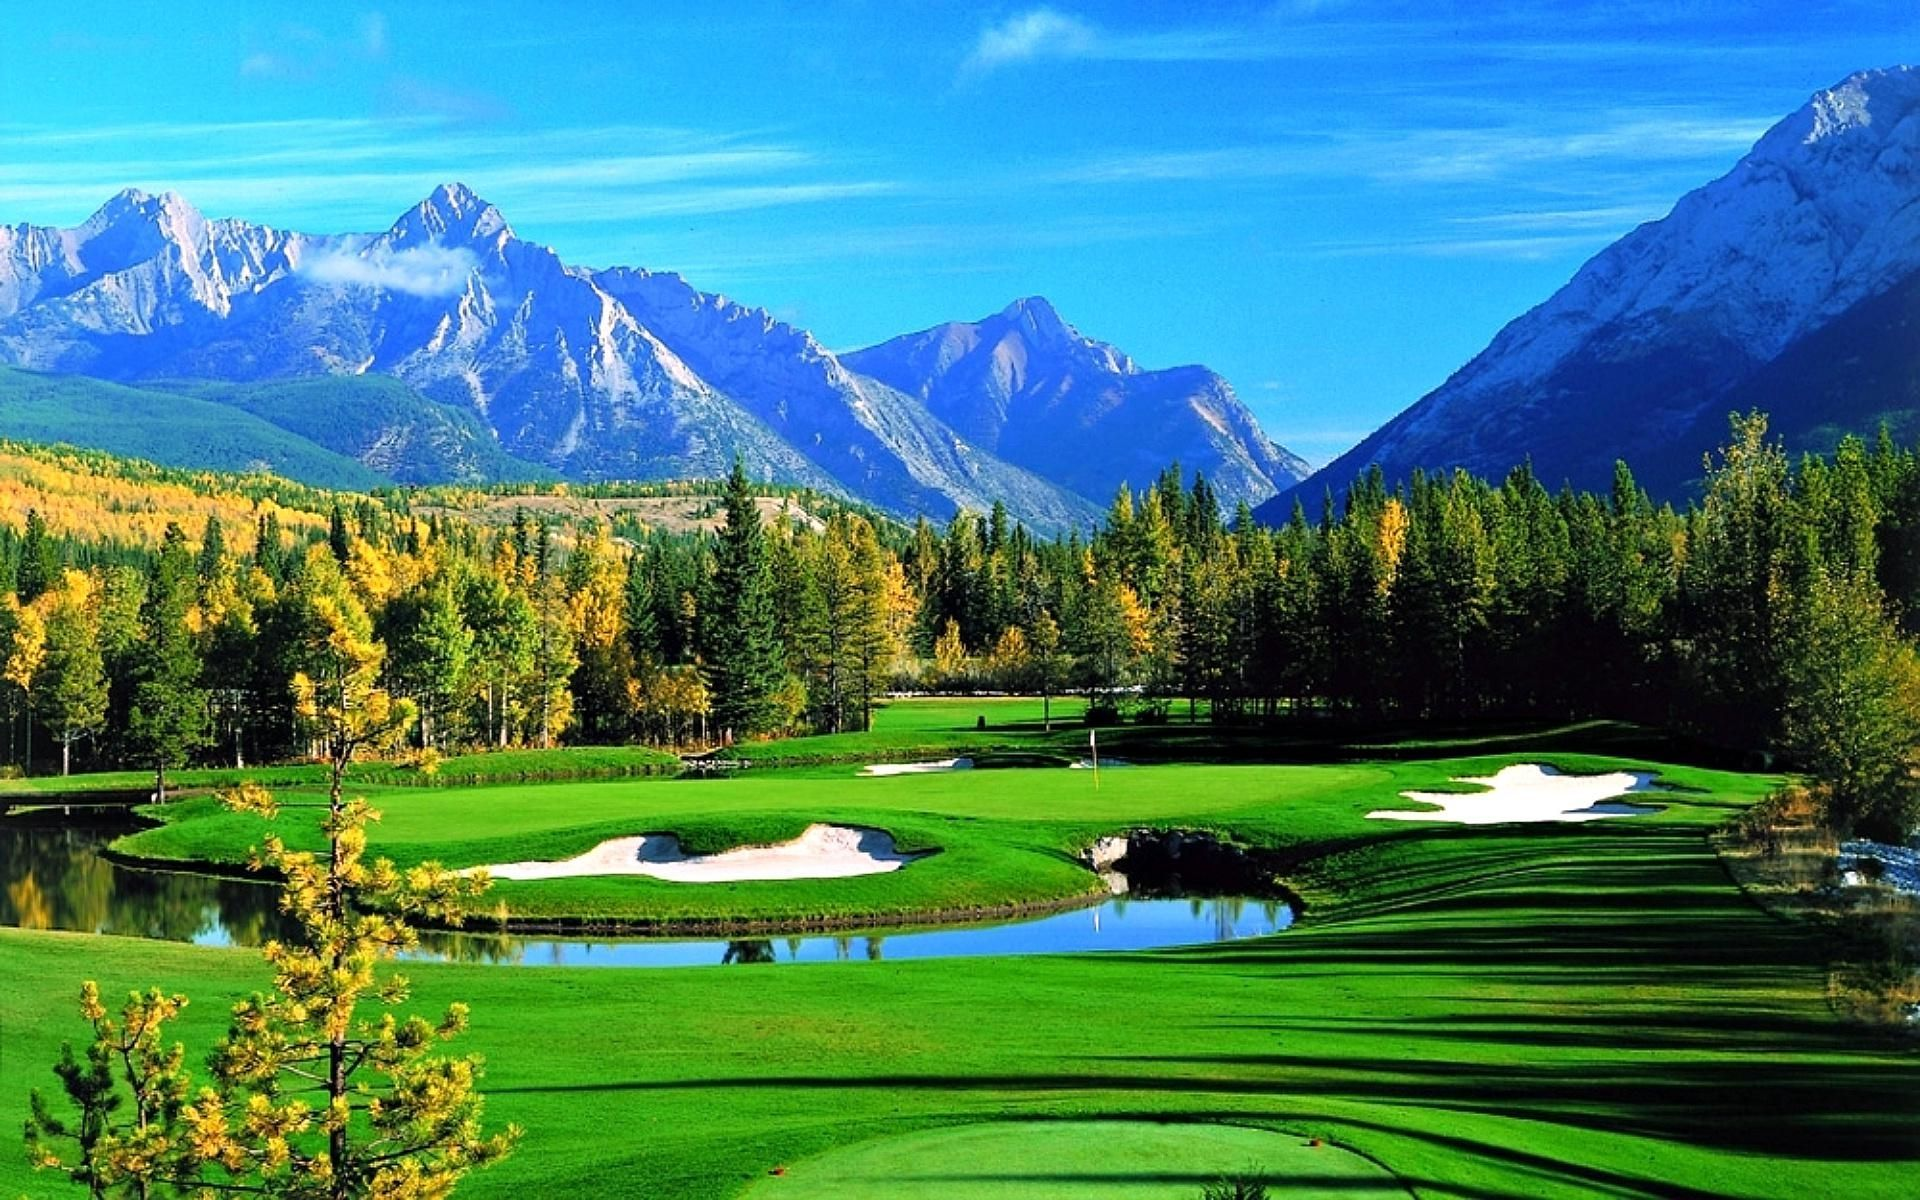 Golf Course Wallpapers Top Free Golf Course Backgrounds